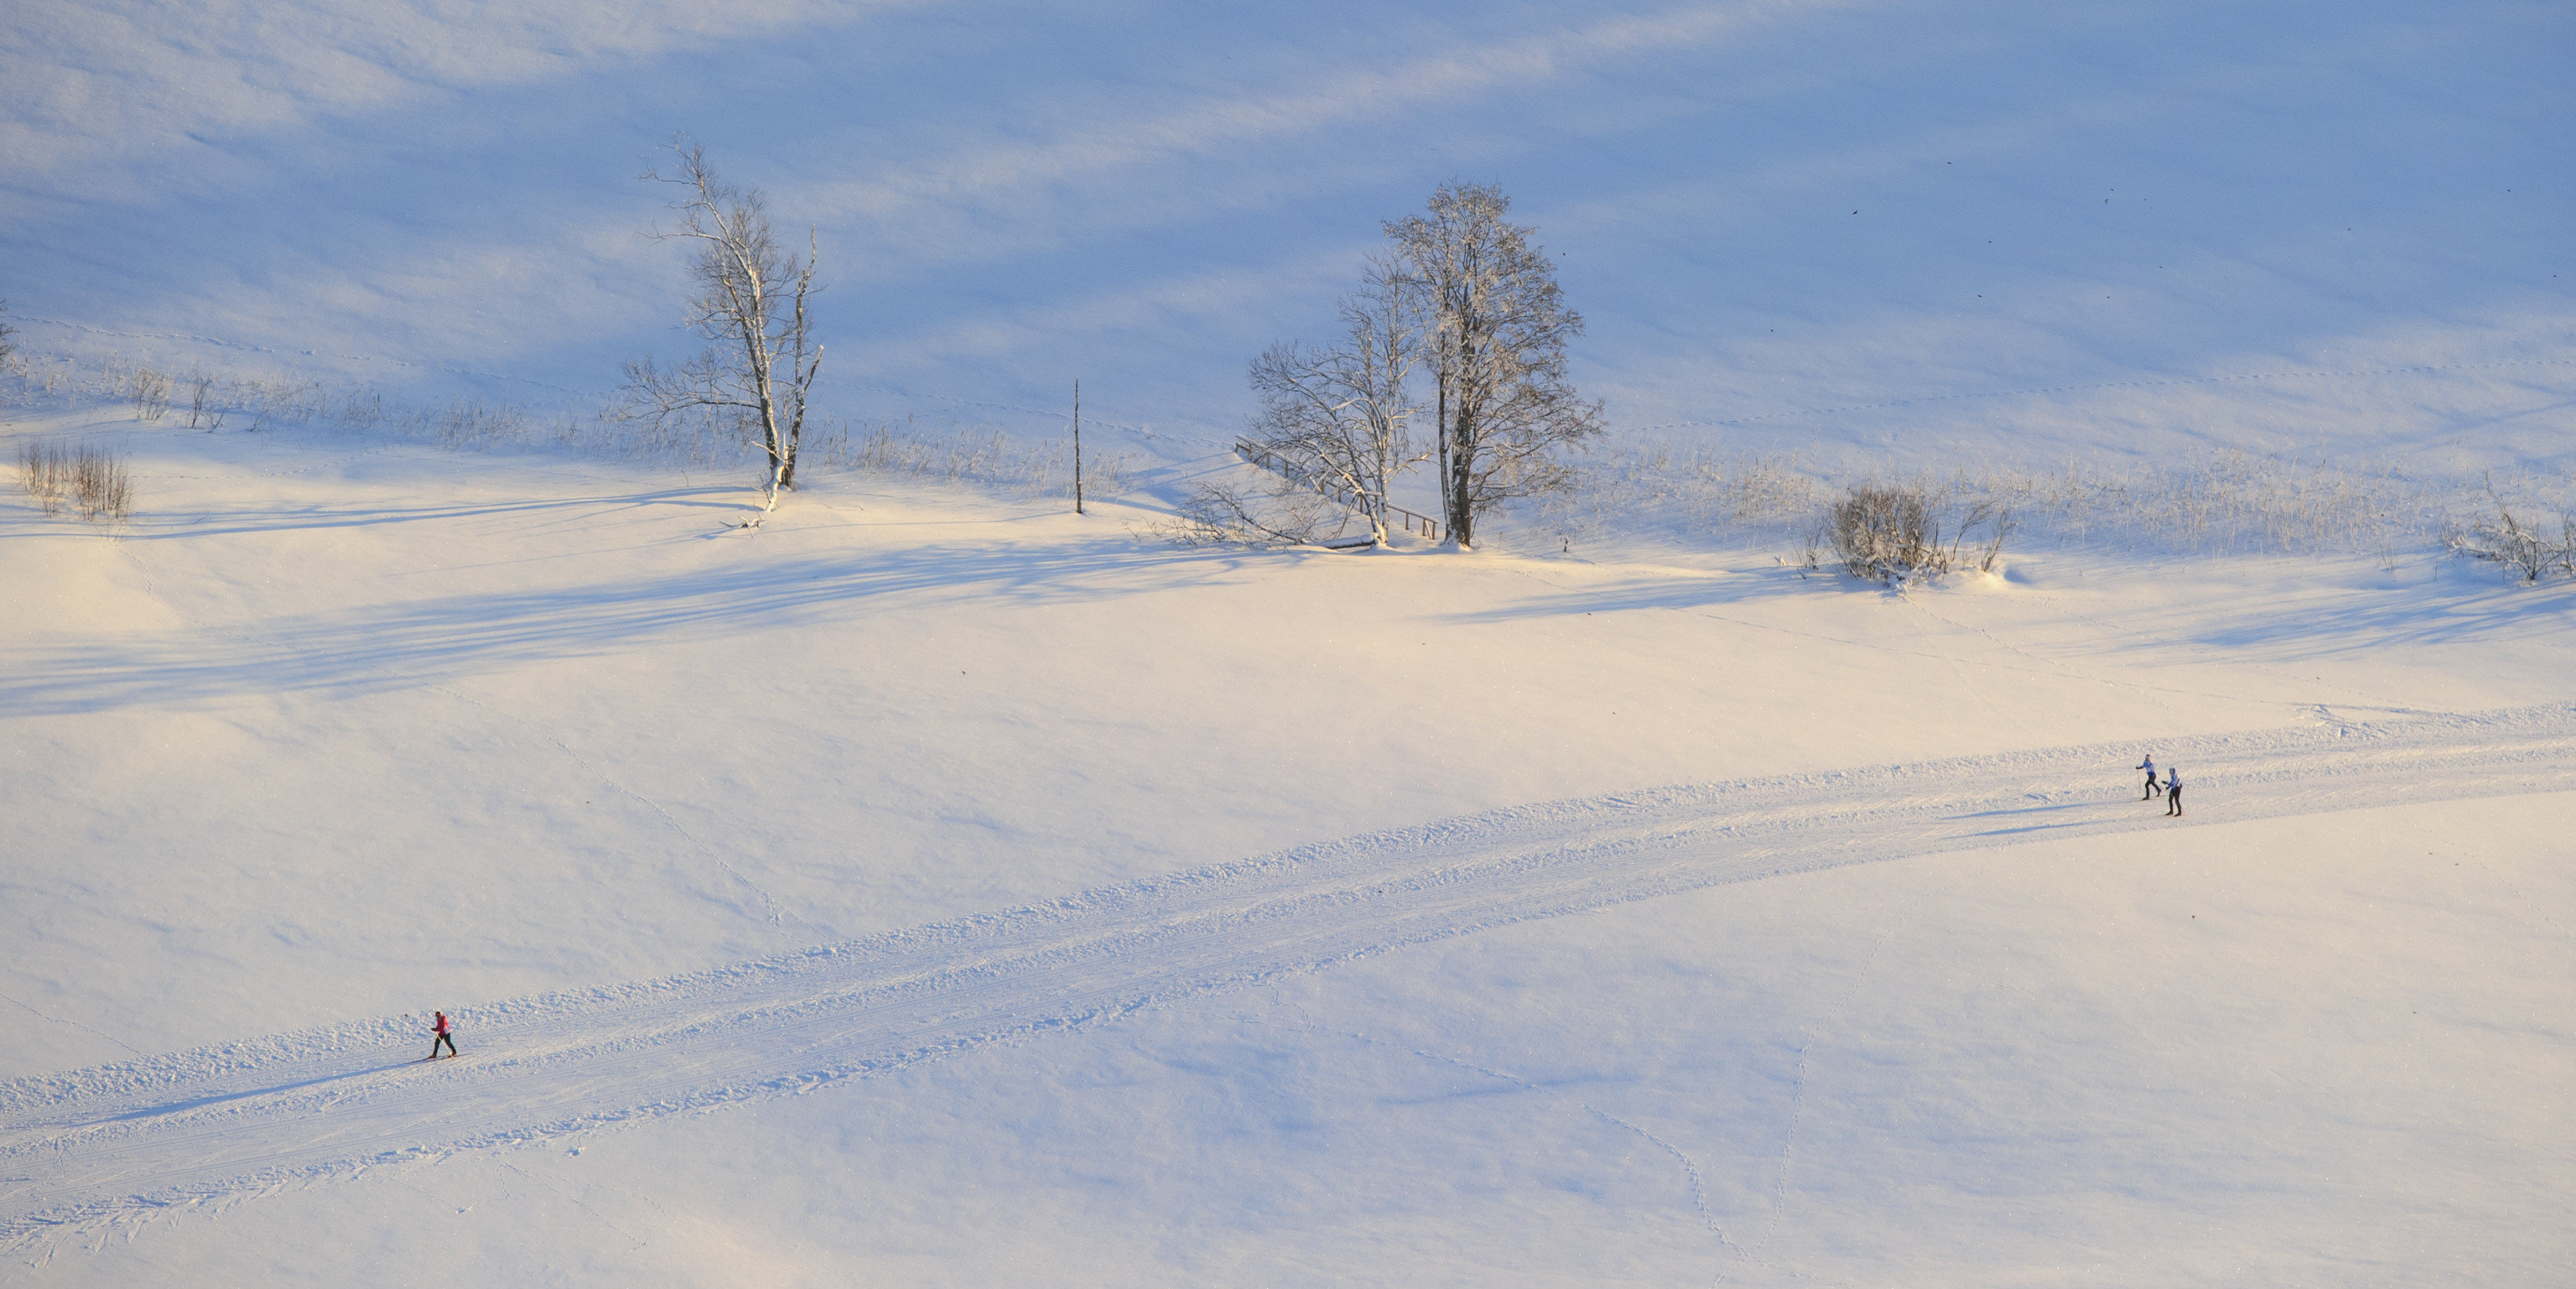 Offbeat snow outdoor sky skiing Winter covered Nature weather piste season geological phenomenon freezing mountain slope hill blizzard ski slope day fresh